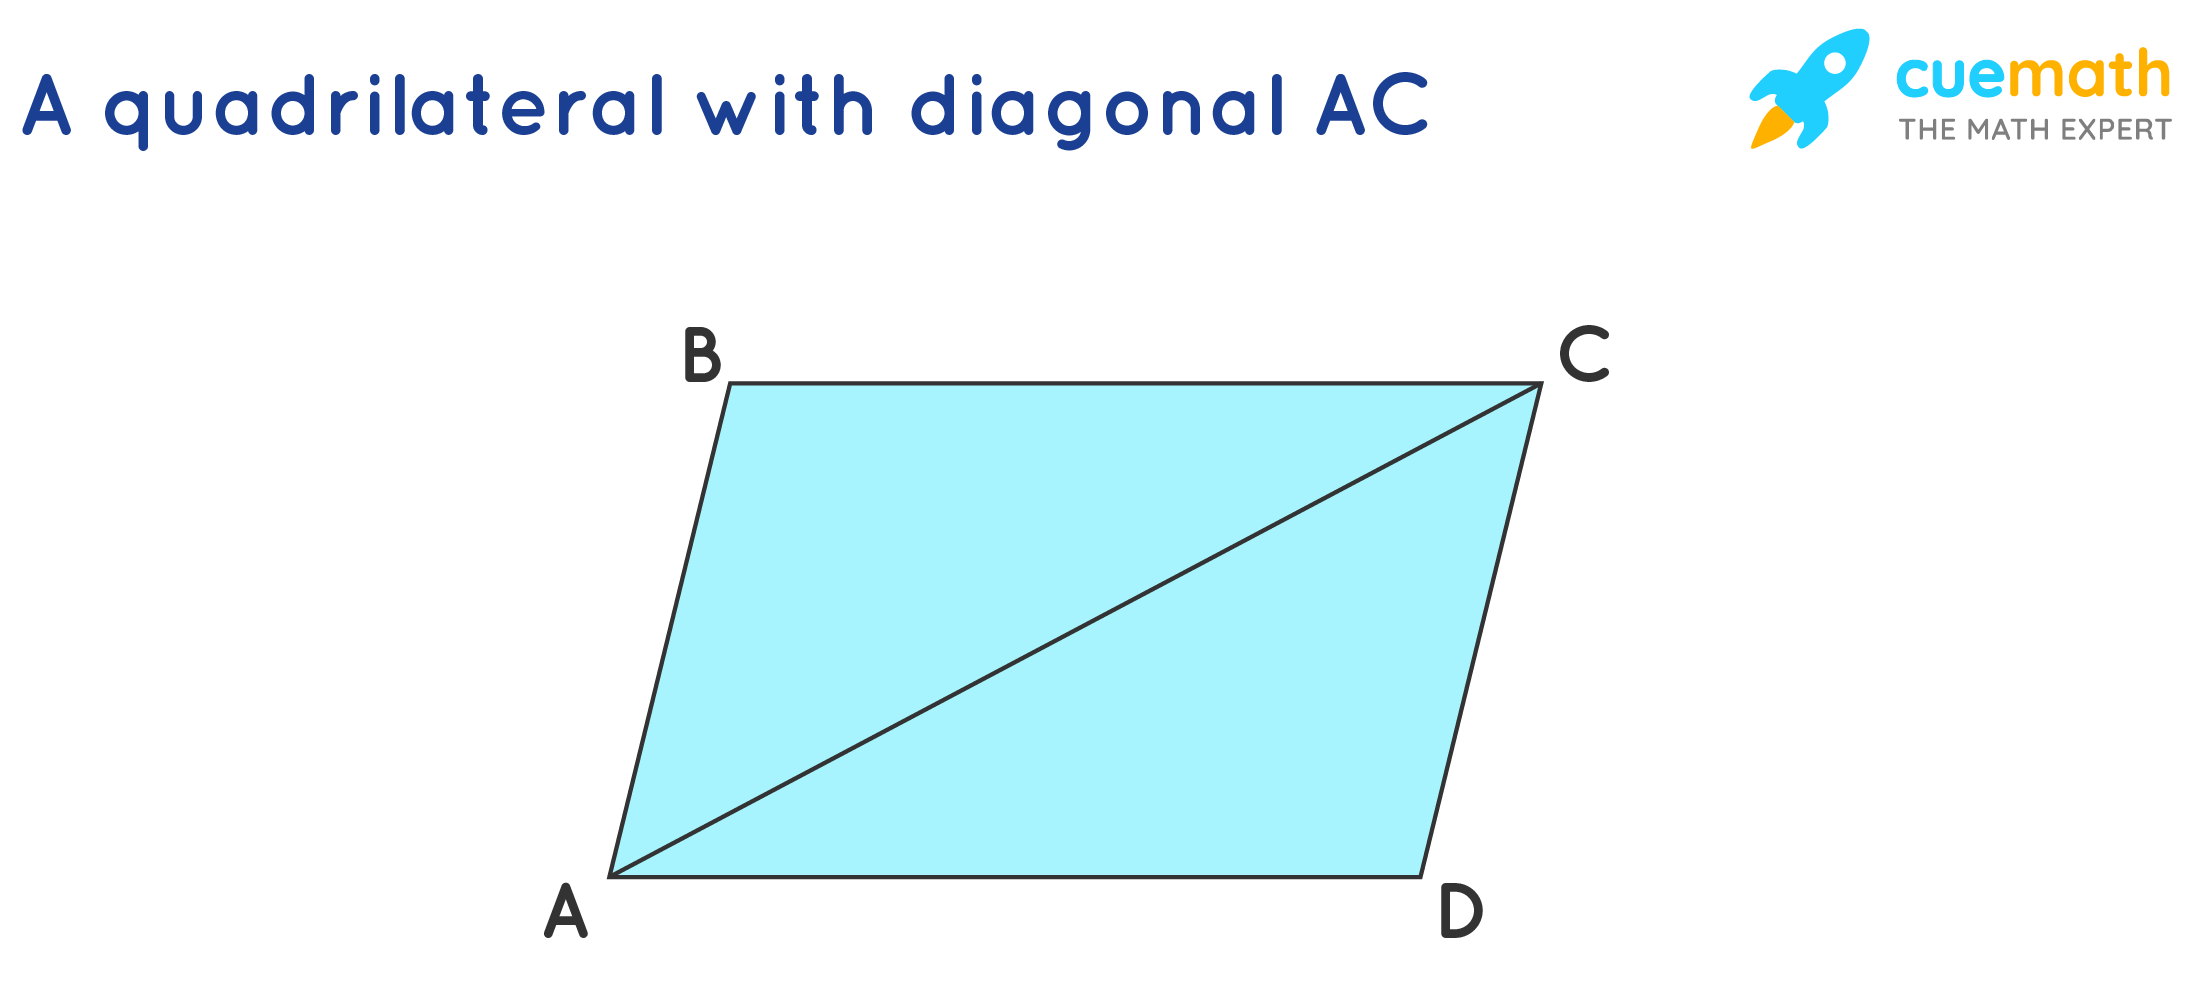 Quadrilateral ABCD with diagonal AC.